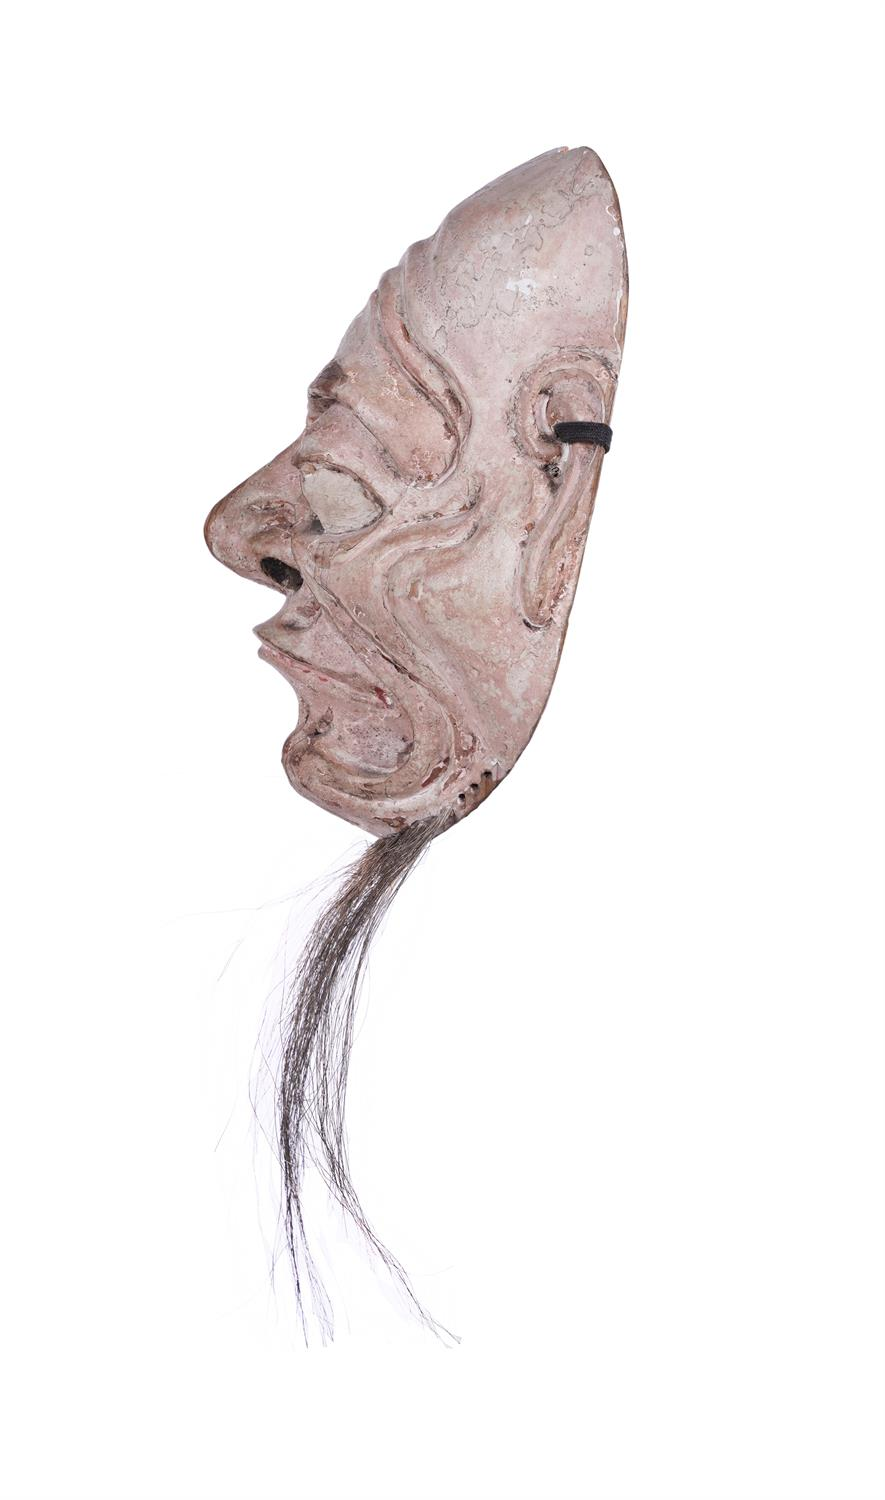 .A LACQUERED WOODEN MASK OF AN OLD MAN Japan, 19th century H: 18,2 cm - w: 14,5 cm Provenance: A - Image 4 of 4